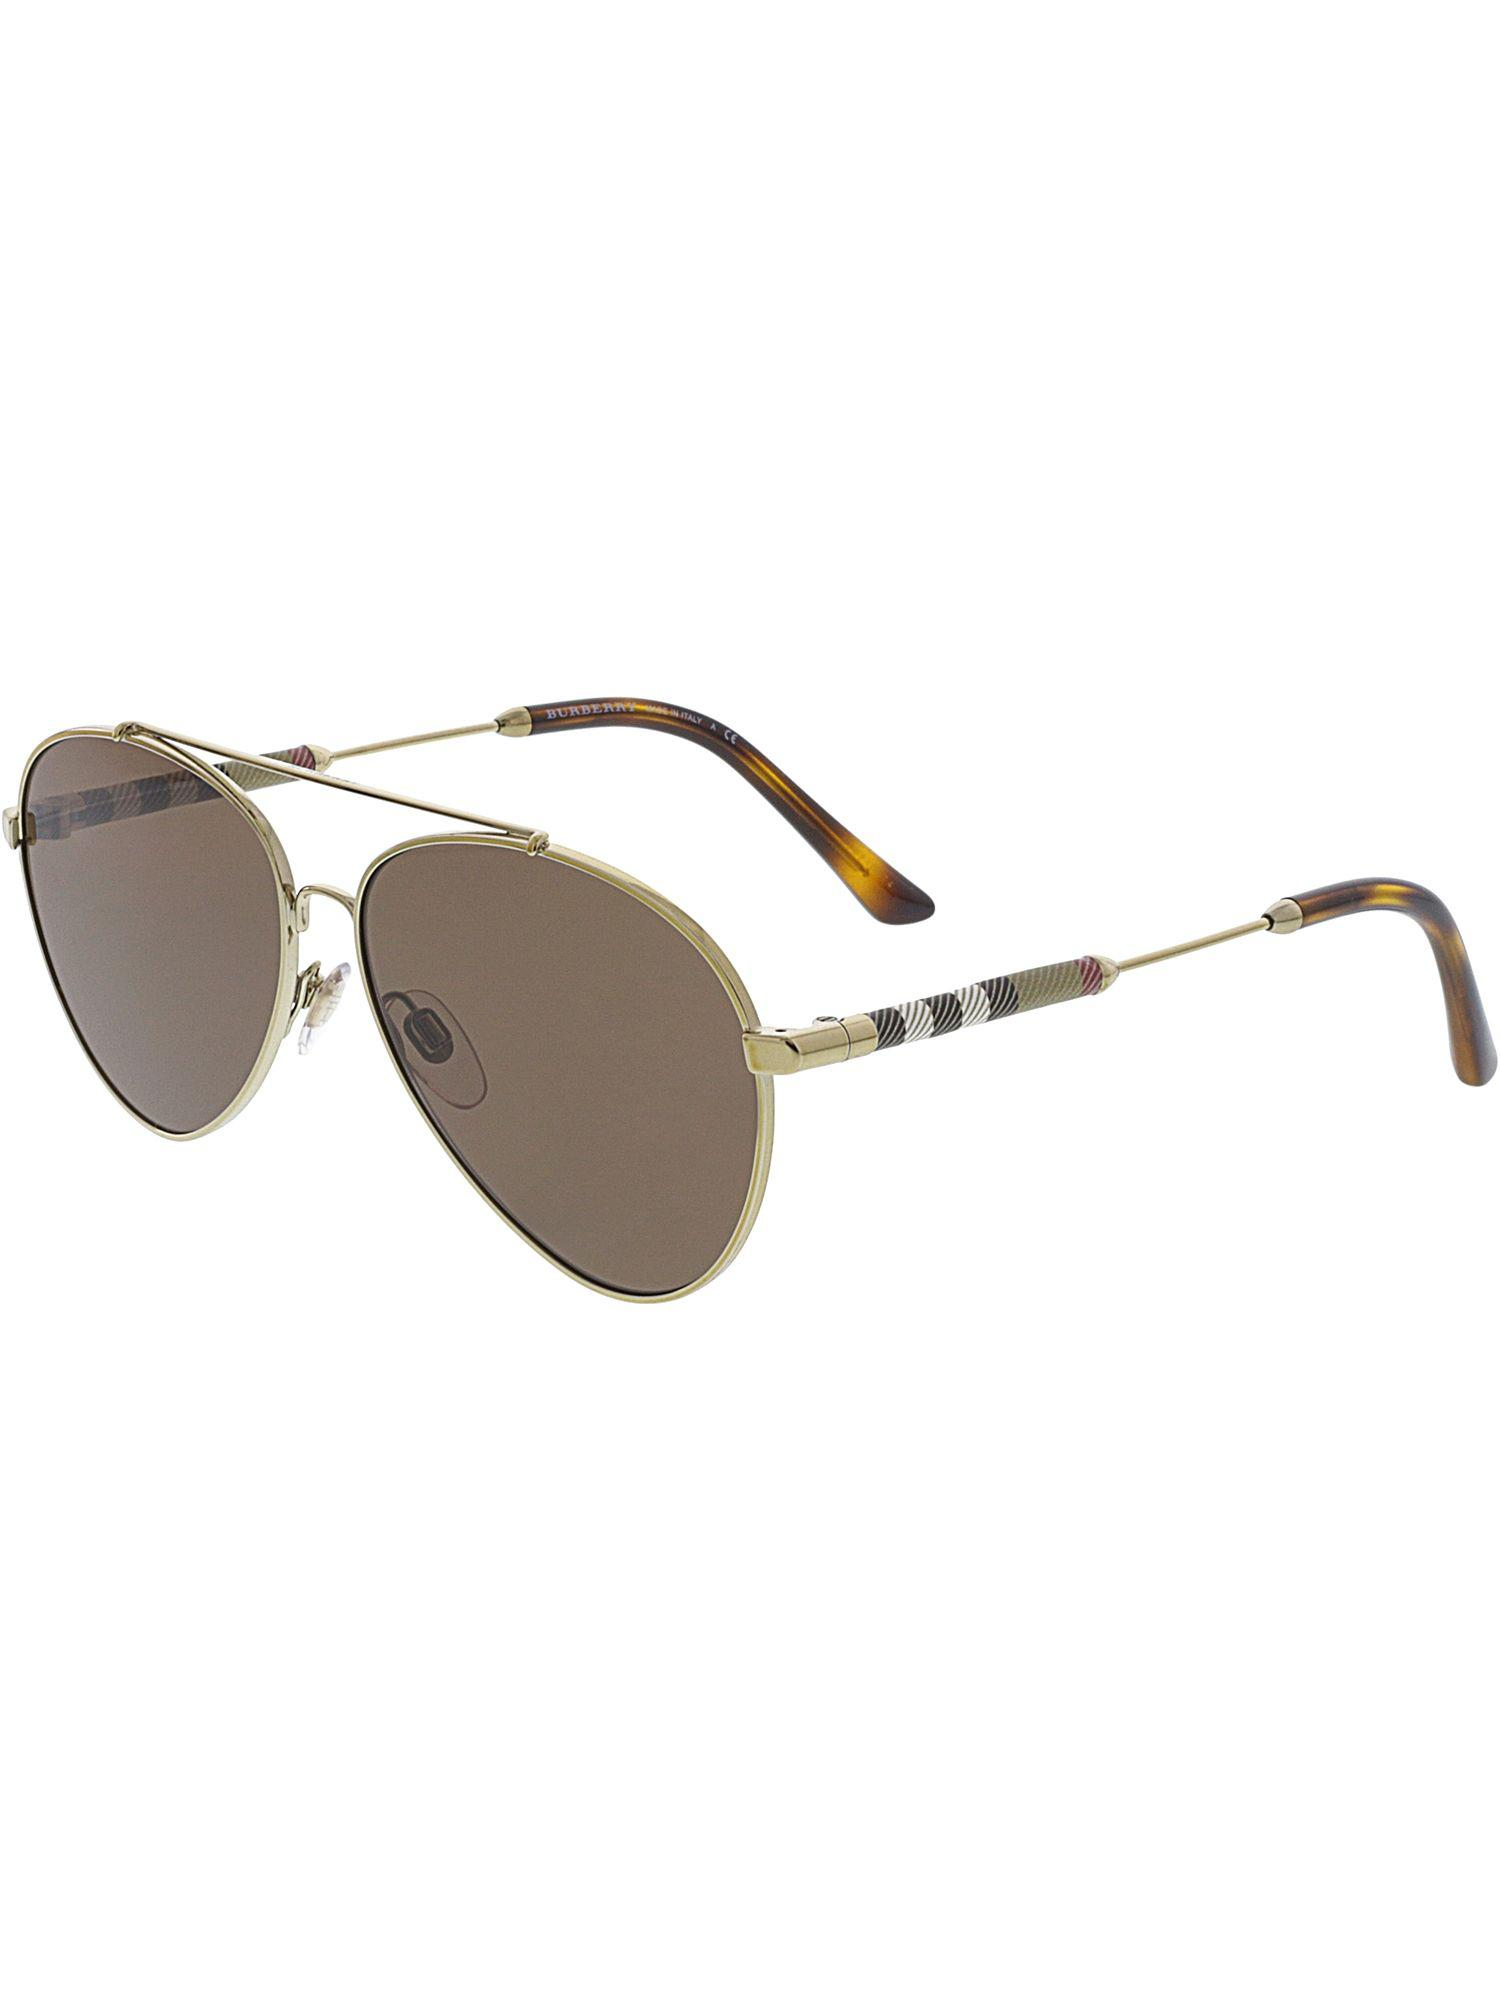 65e40a018756 Burberry. Women's Mirrored Be3092q-114573-57 Brown Aviator Sunglasses